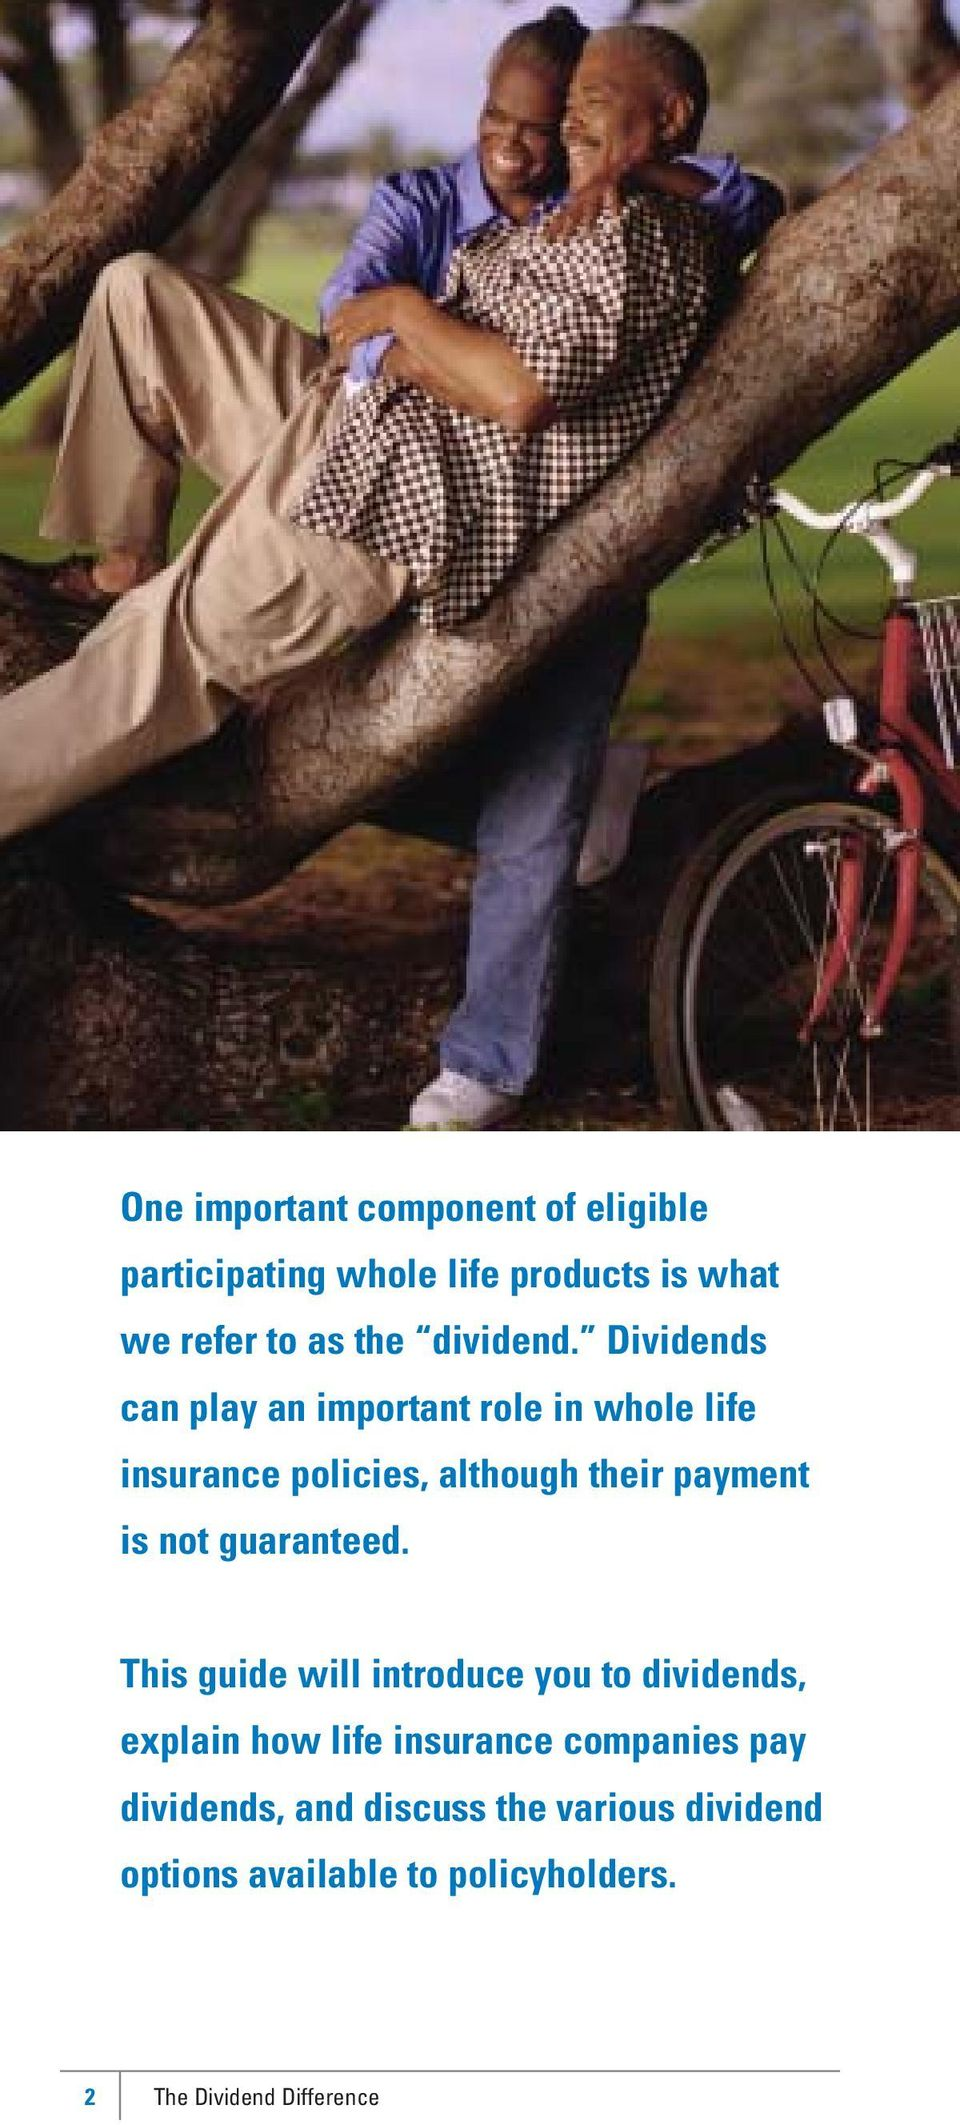 Dividends can play an important role in whole life insurance policies, although their payment is not